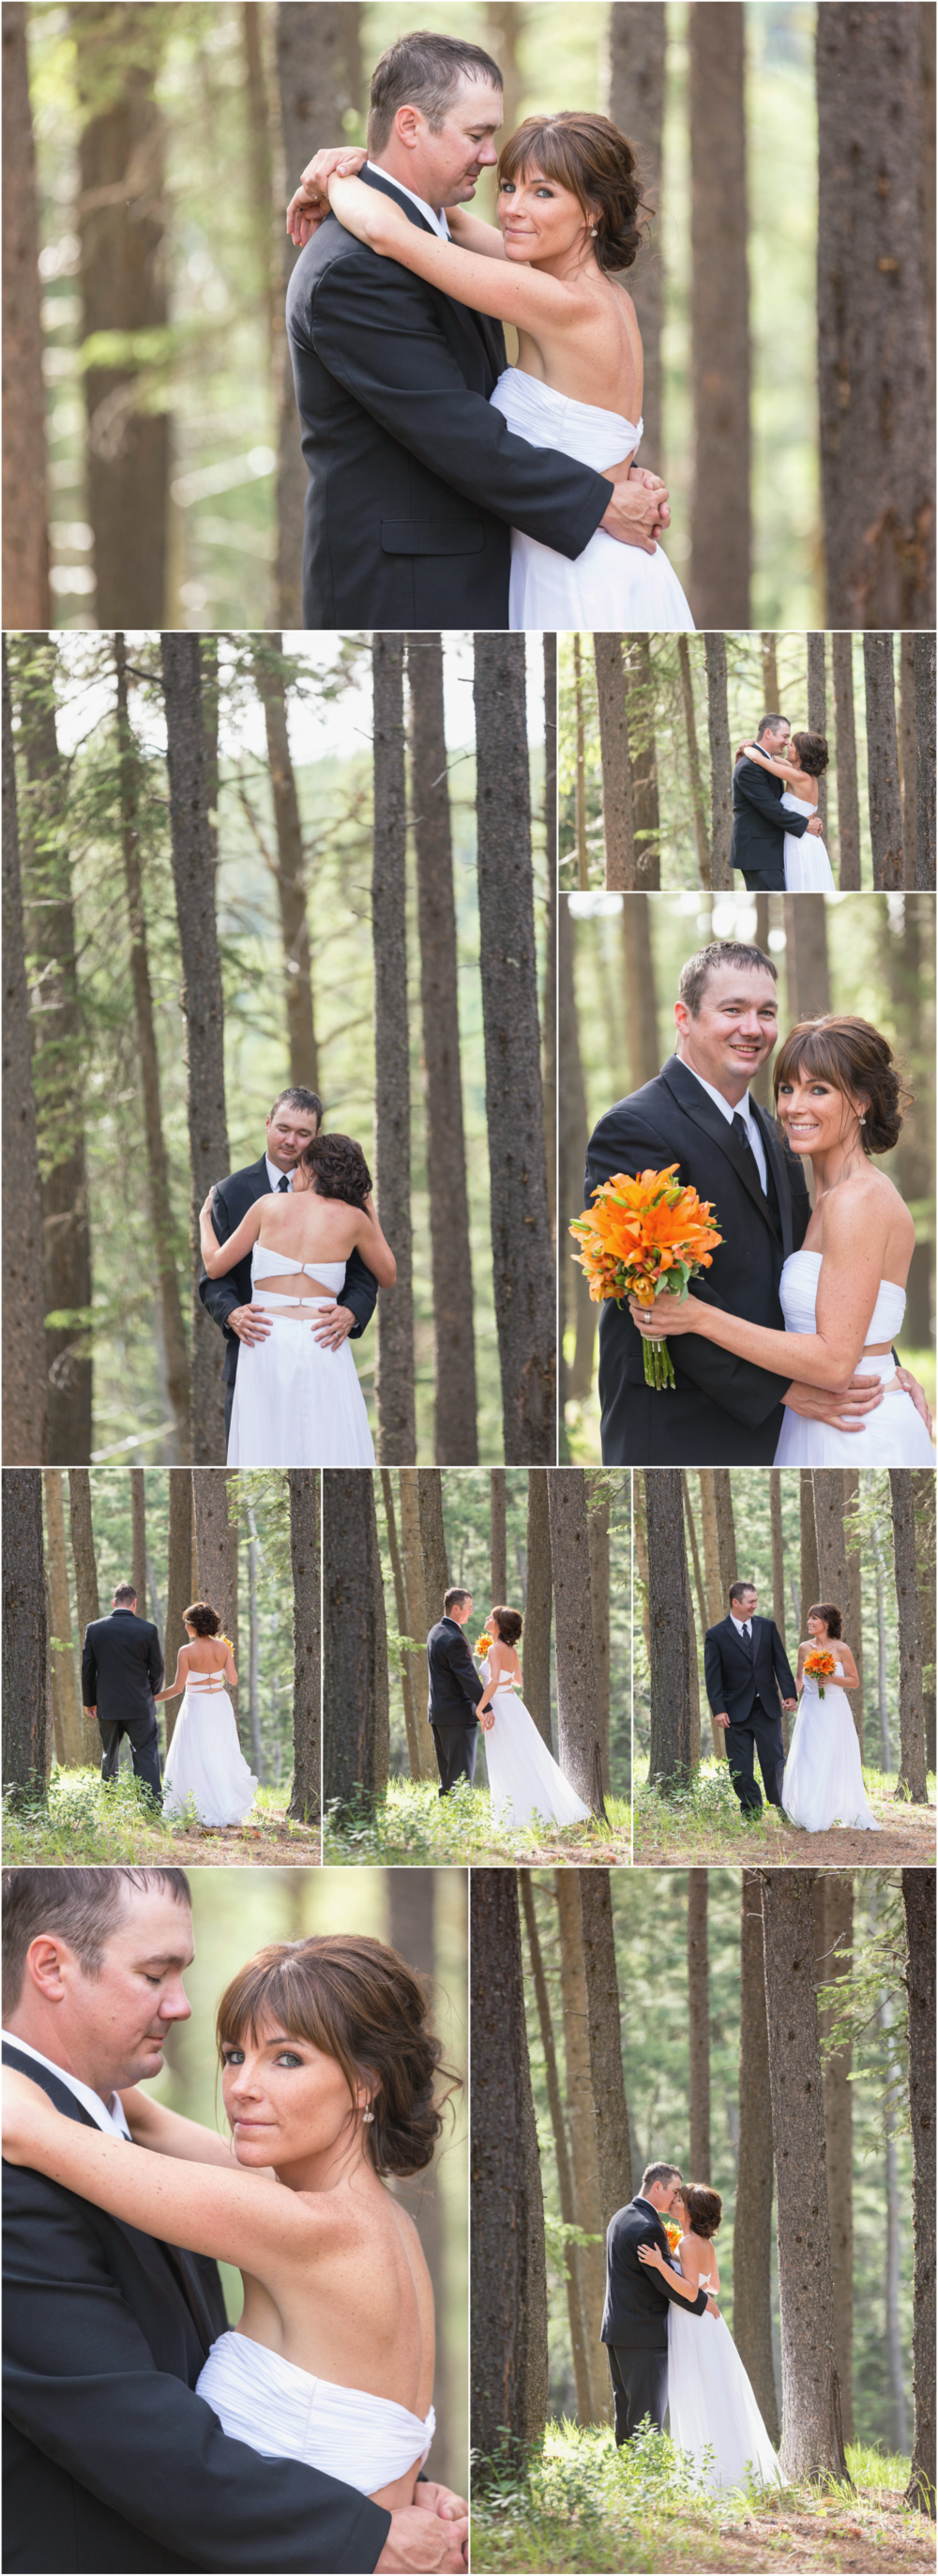 elkwater_wedding_peninsula_09b.png